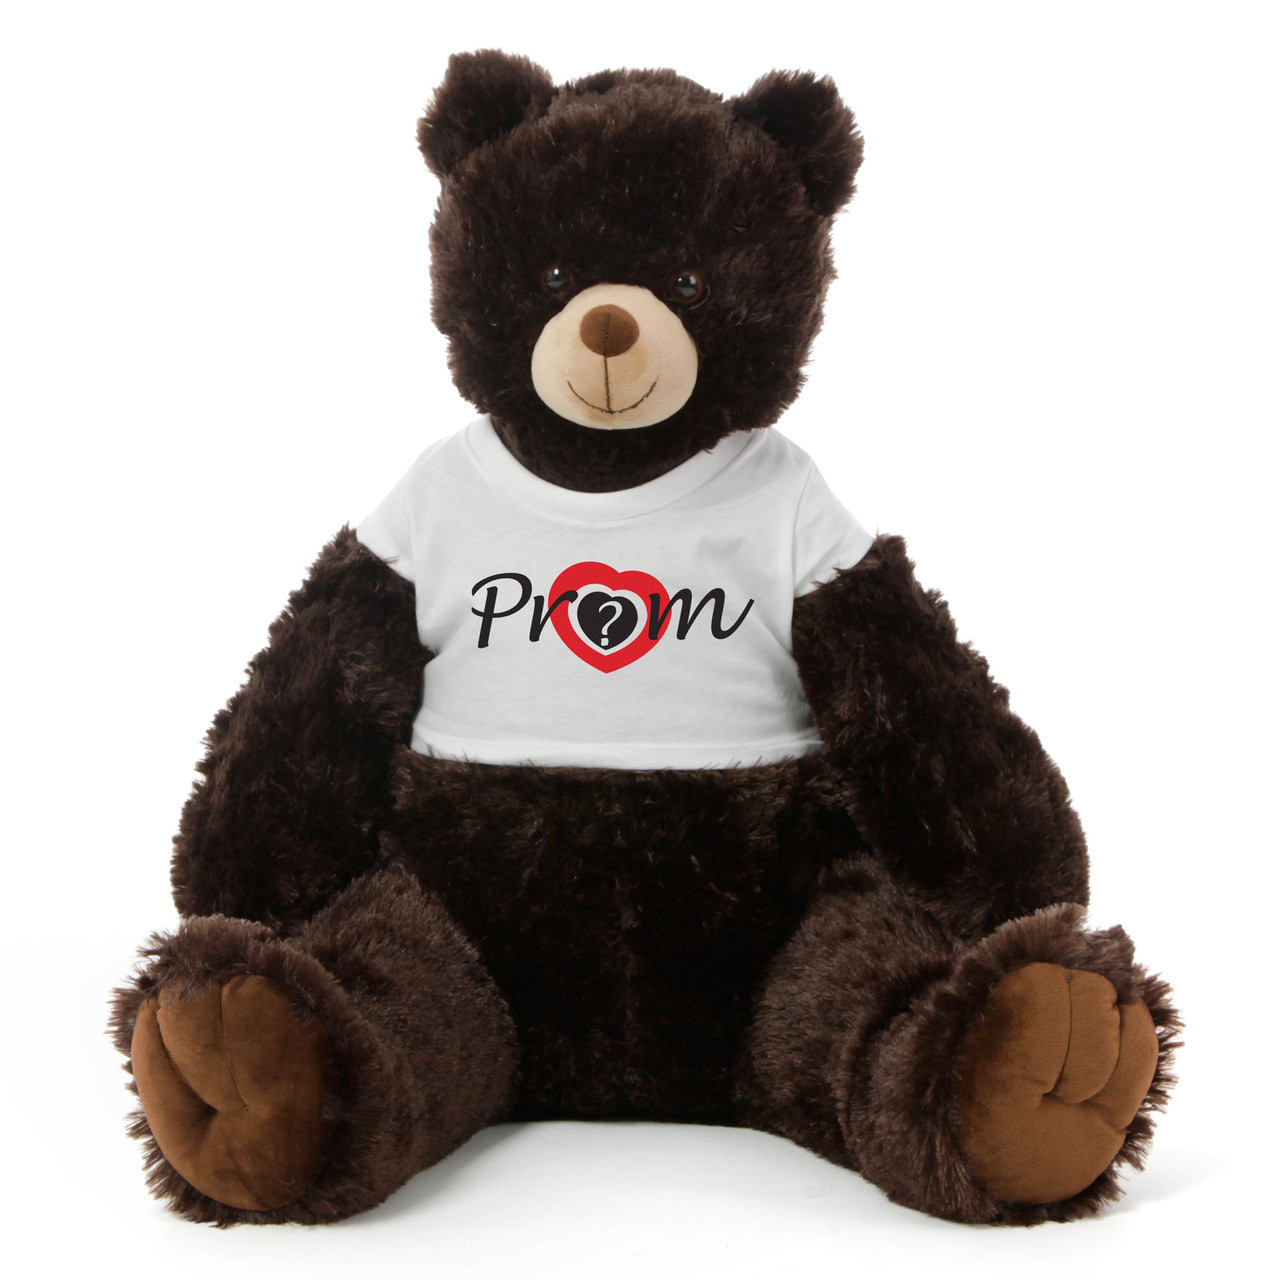 3½ ft Baby Tubs Cuddly Dark Brown Prom Teddy Bear (Prom? - Heart Target)